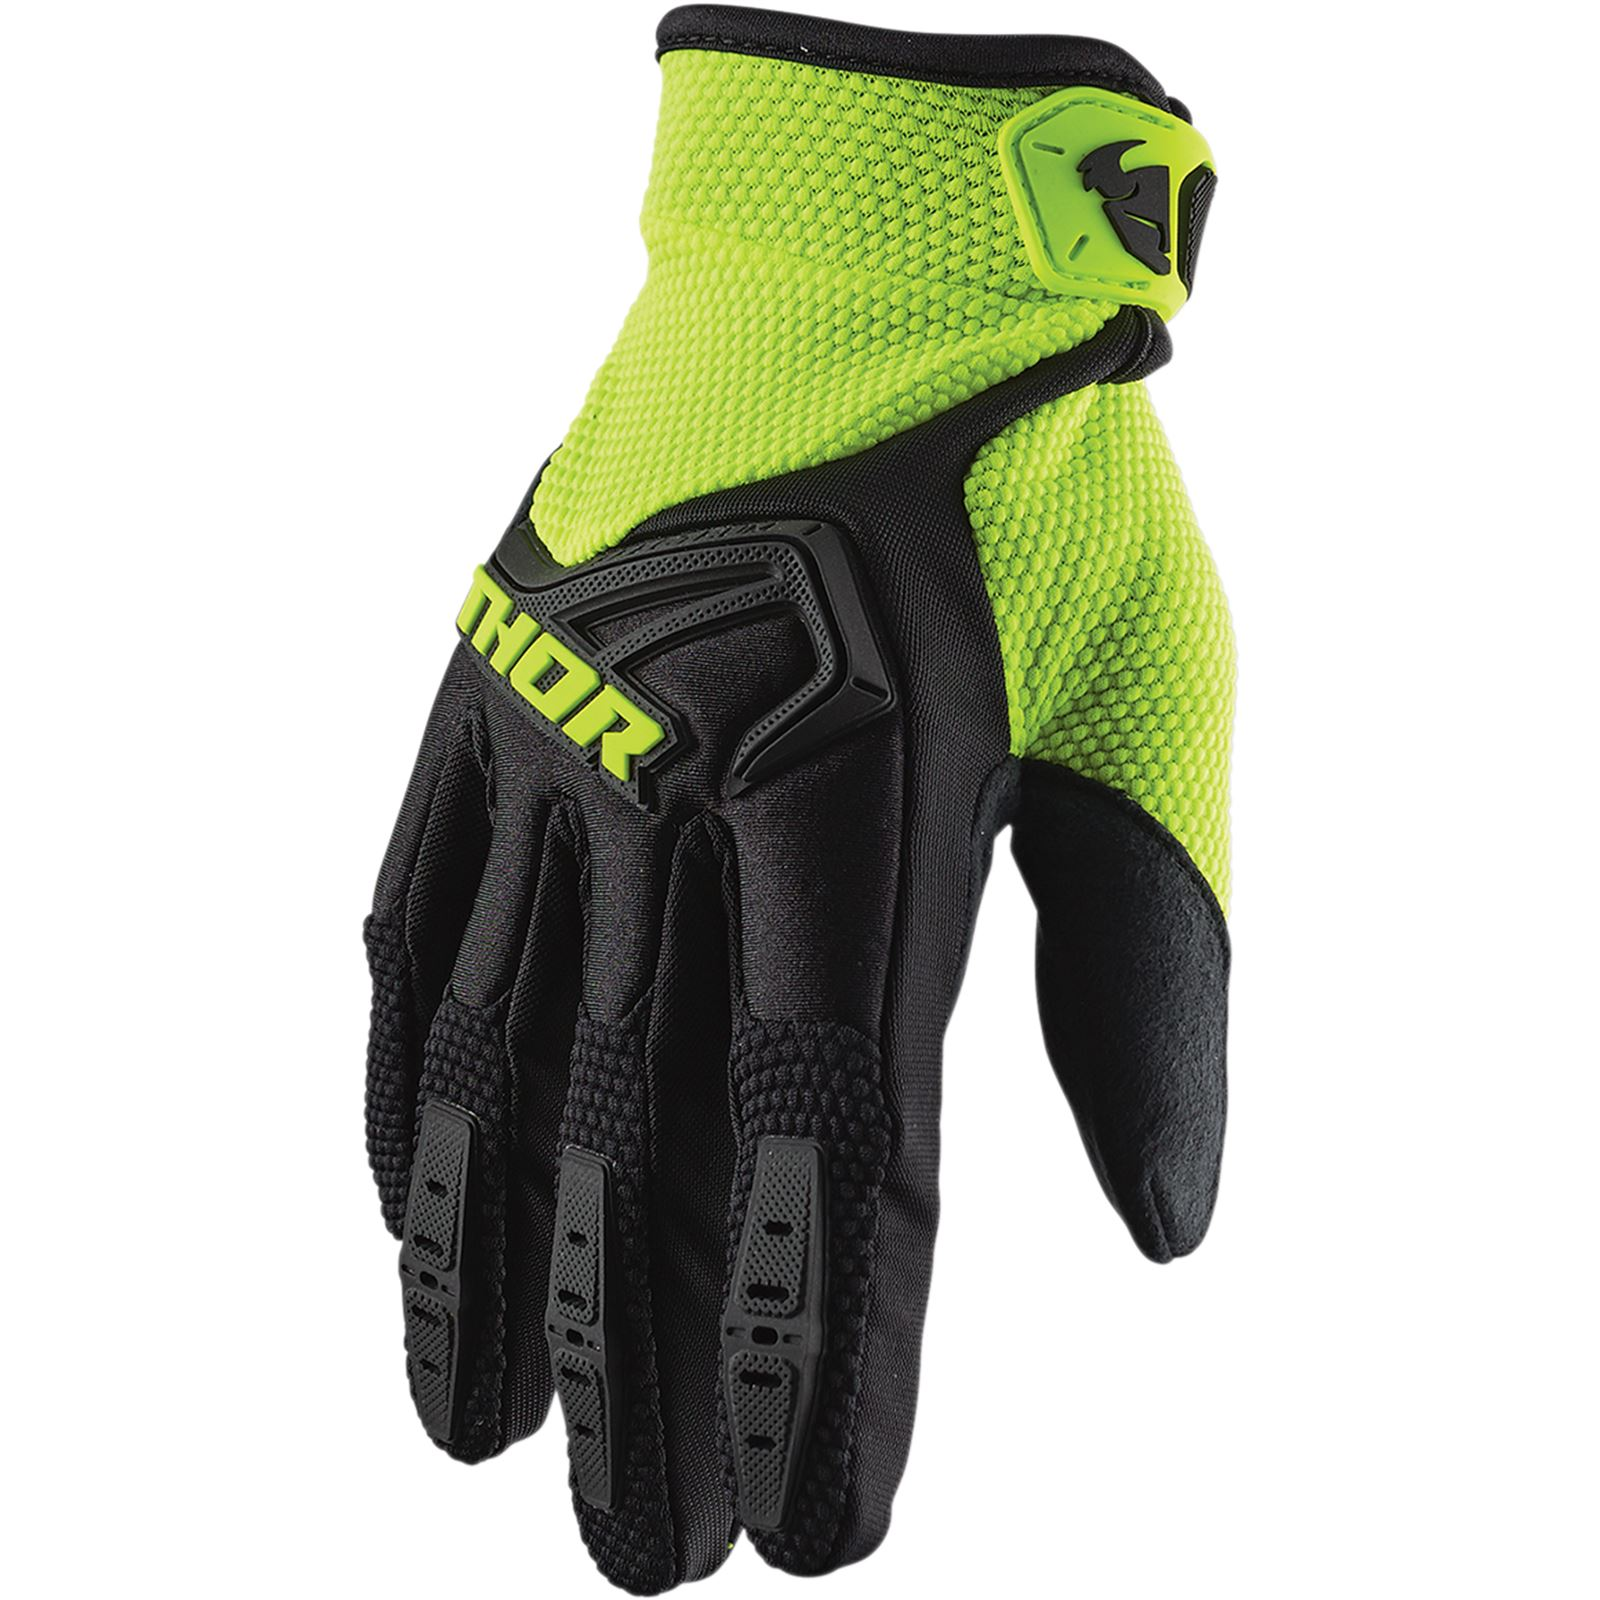 Thor Youth Spectrum Gloves Black/Acid - Small